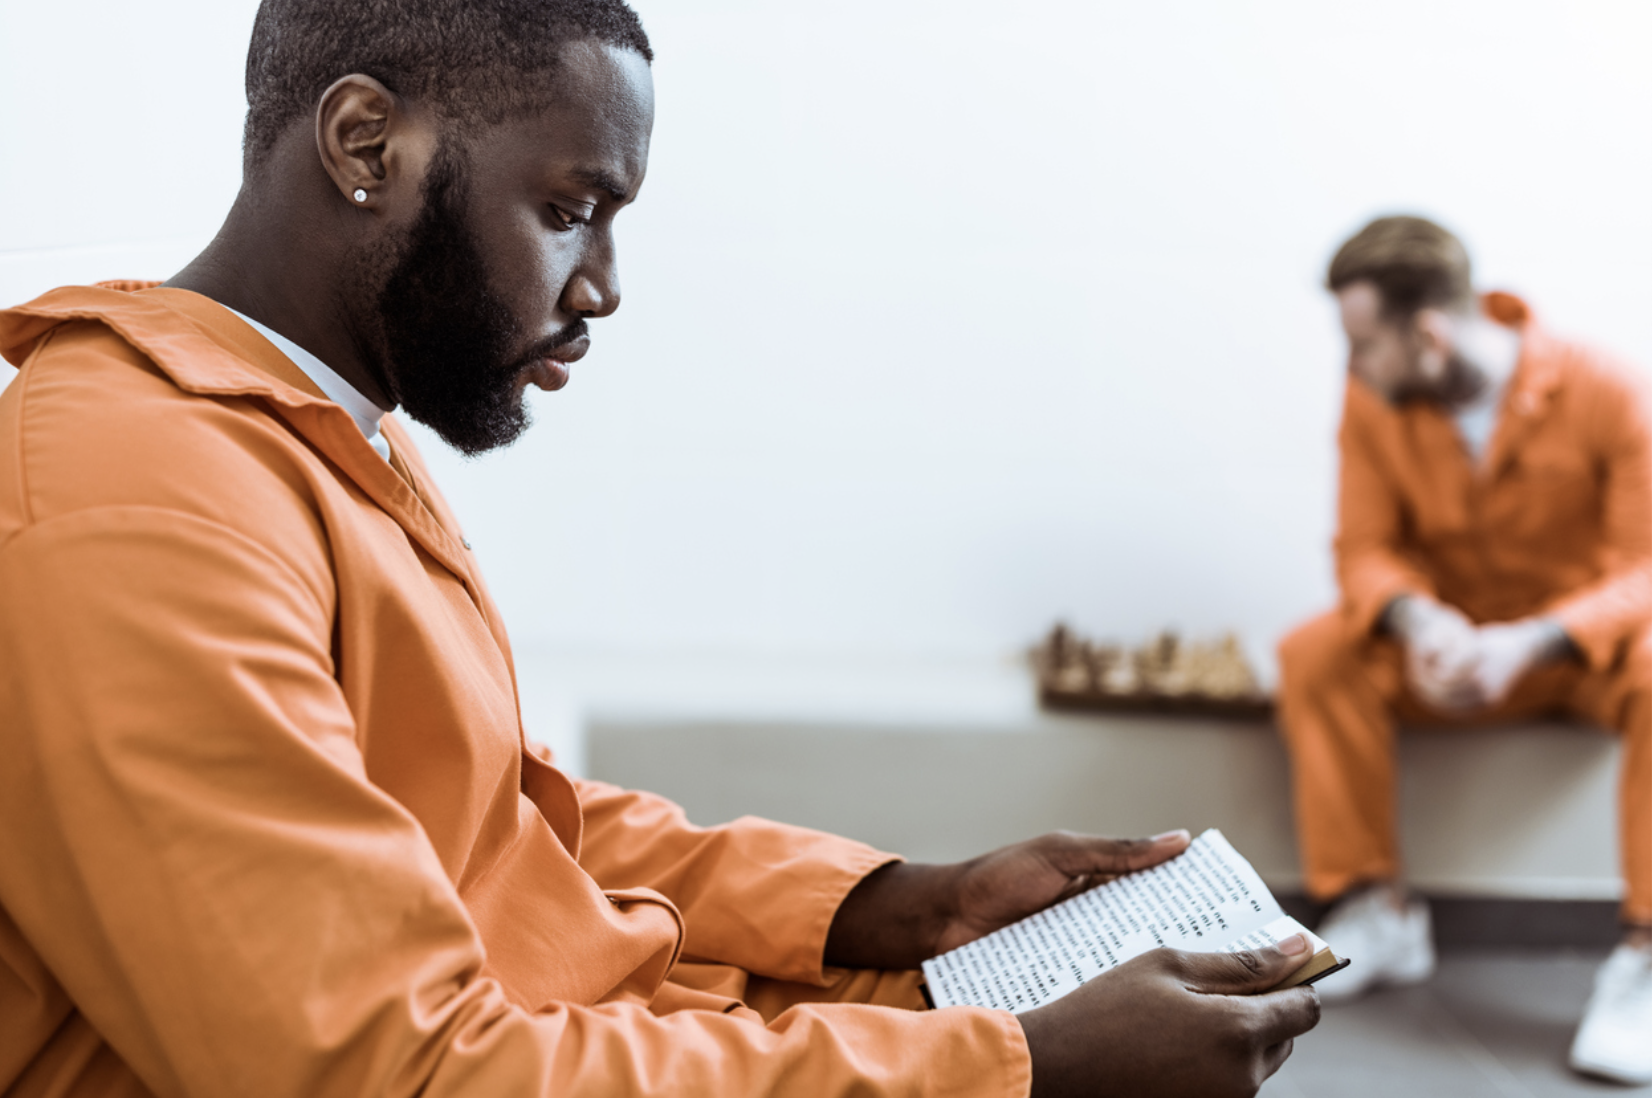 Does Character Have a Role to Play in Prison Education Programs? Yes.